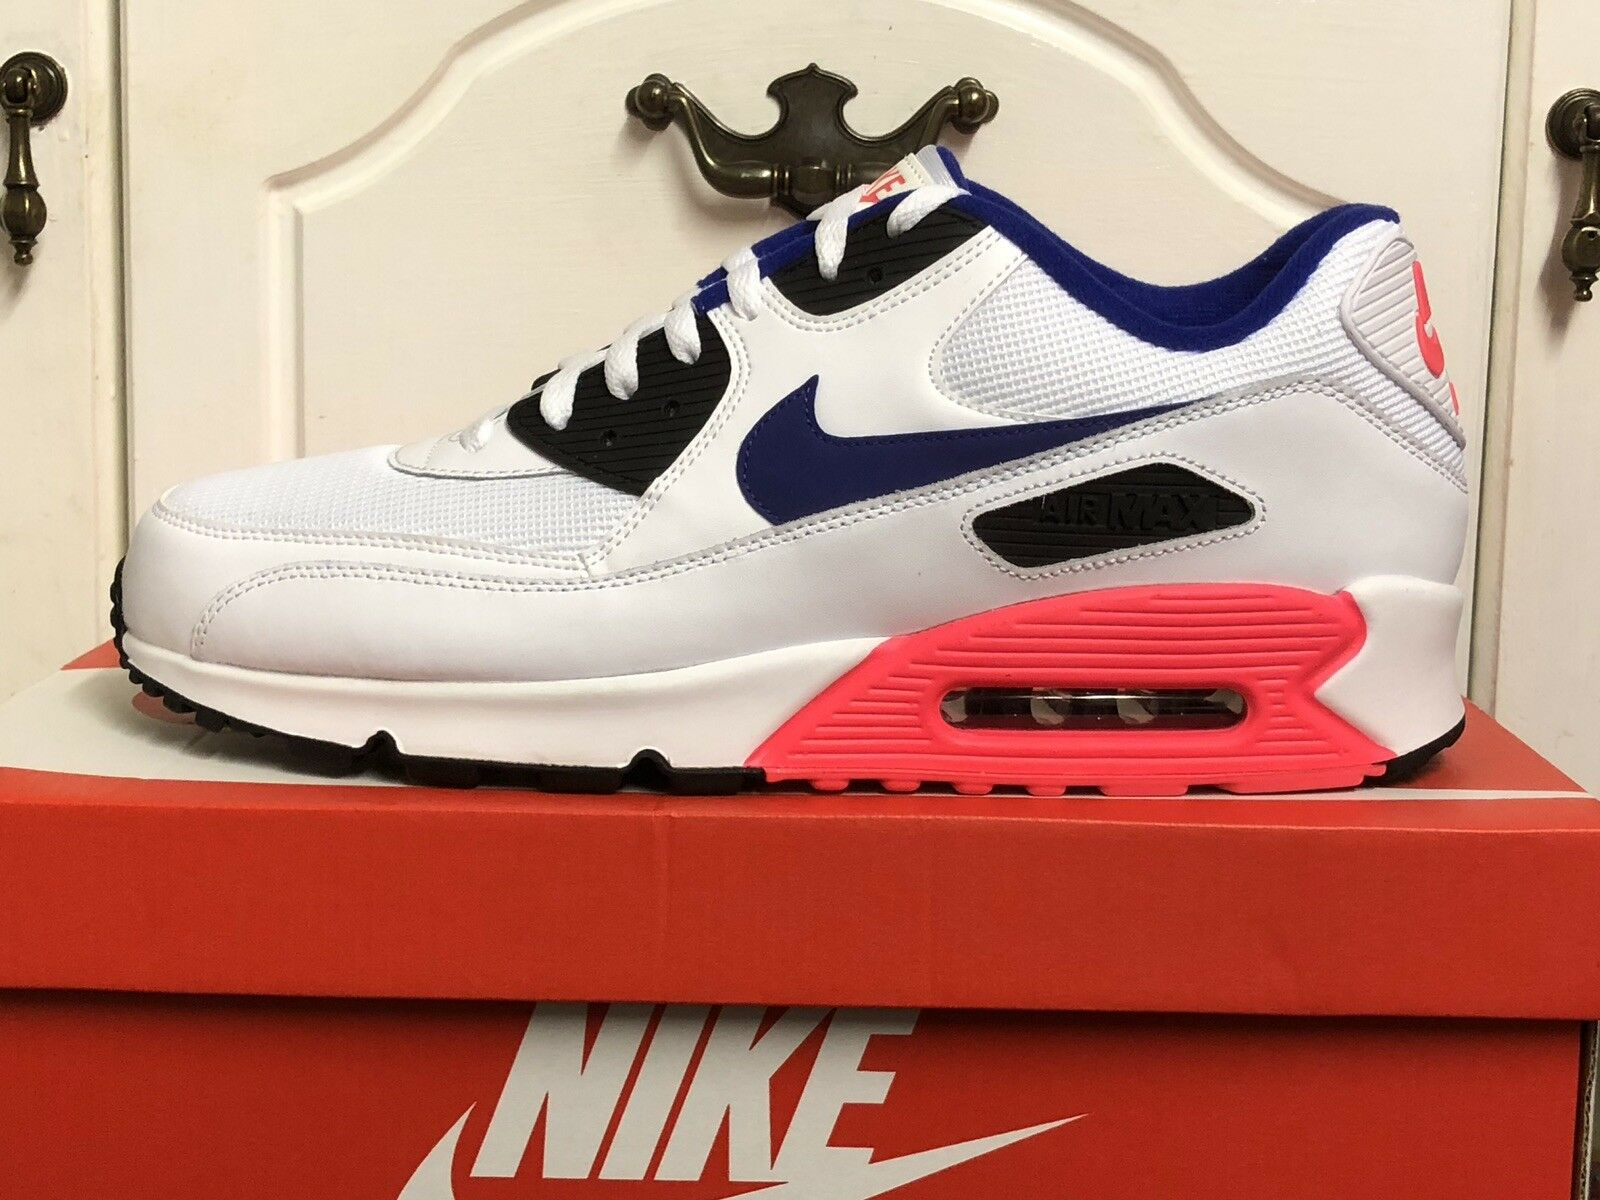 NIKE AIR MAX 90 ESSENTIAL TRAINERS Turnschuhe schuhe UK 13 EUR 48,5 US 14